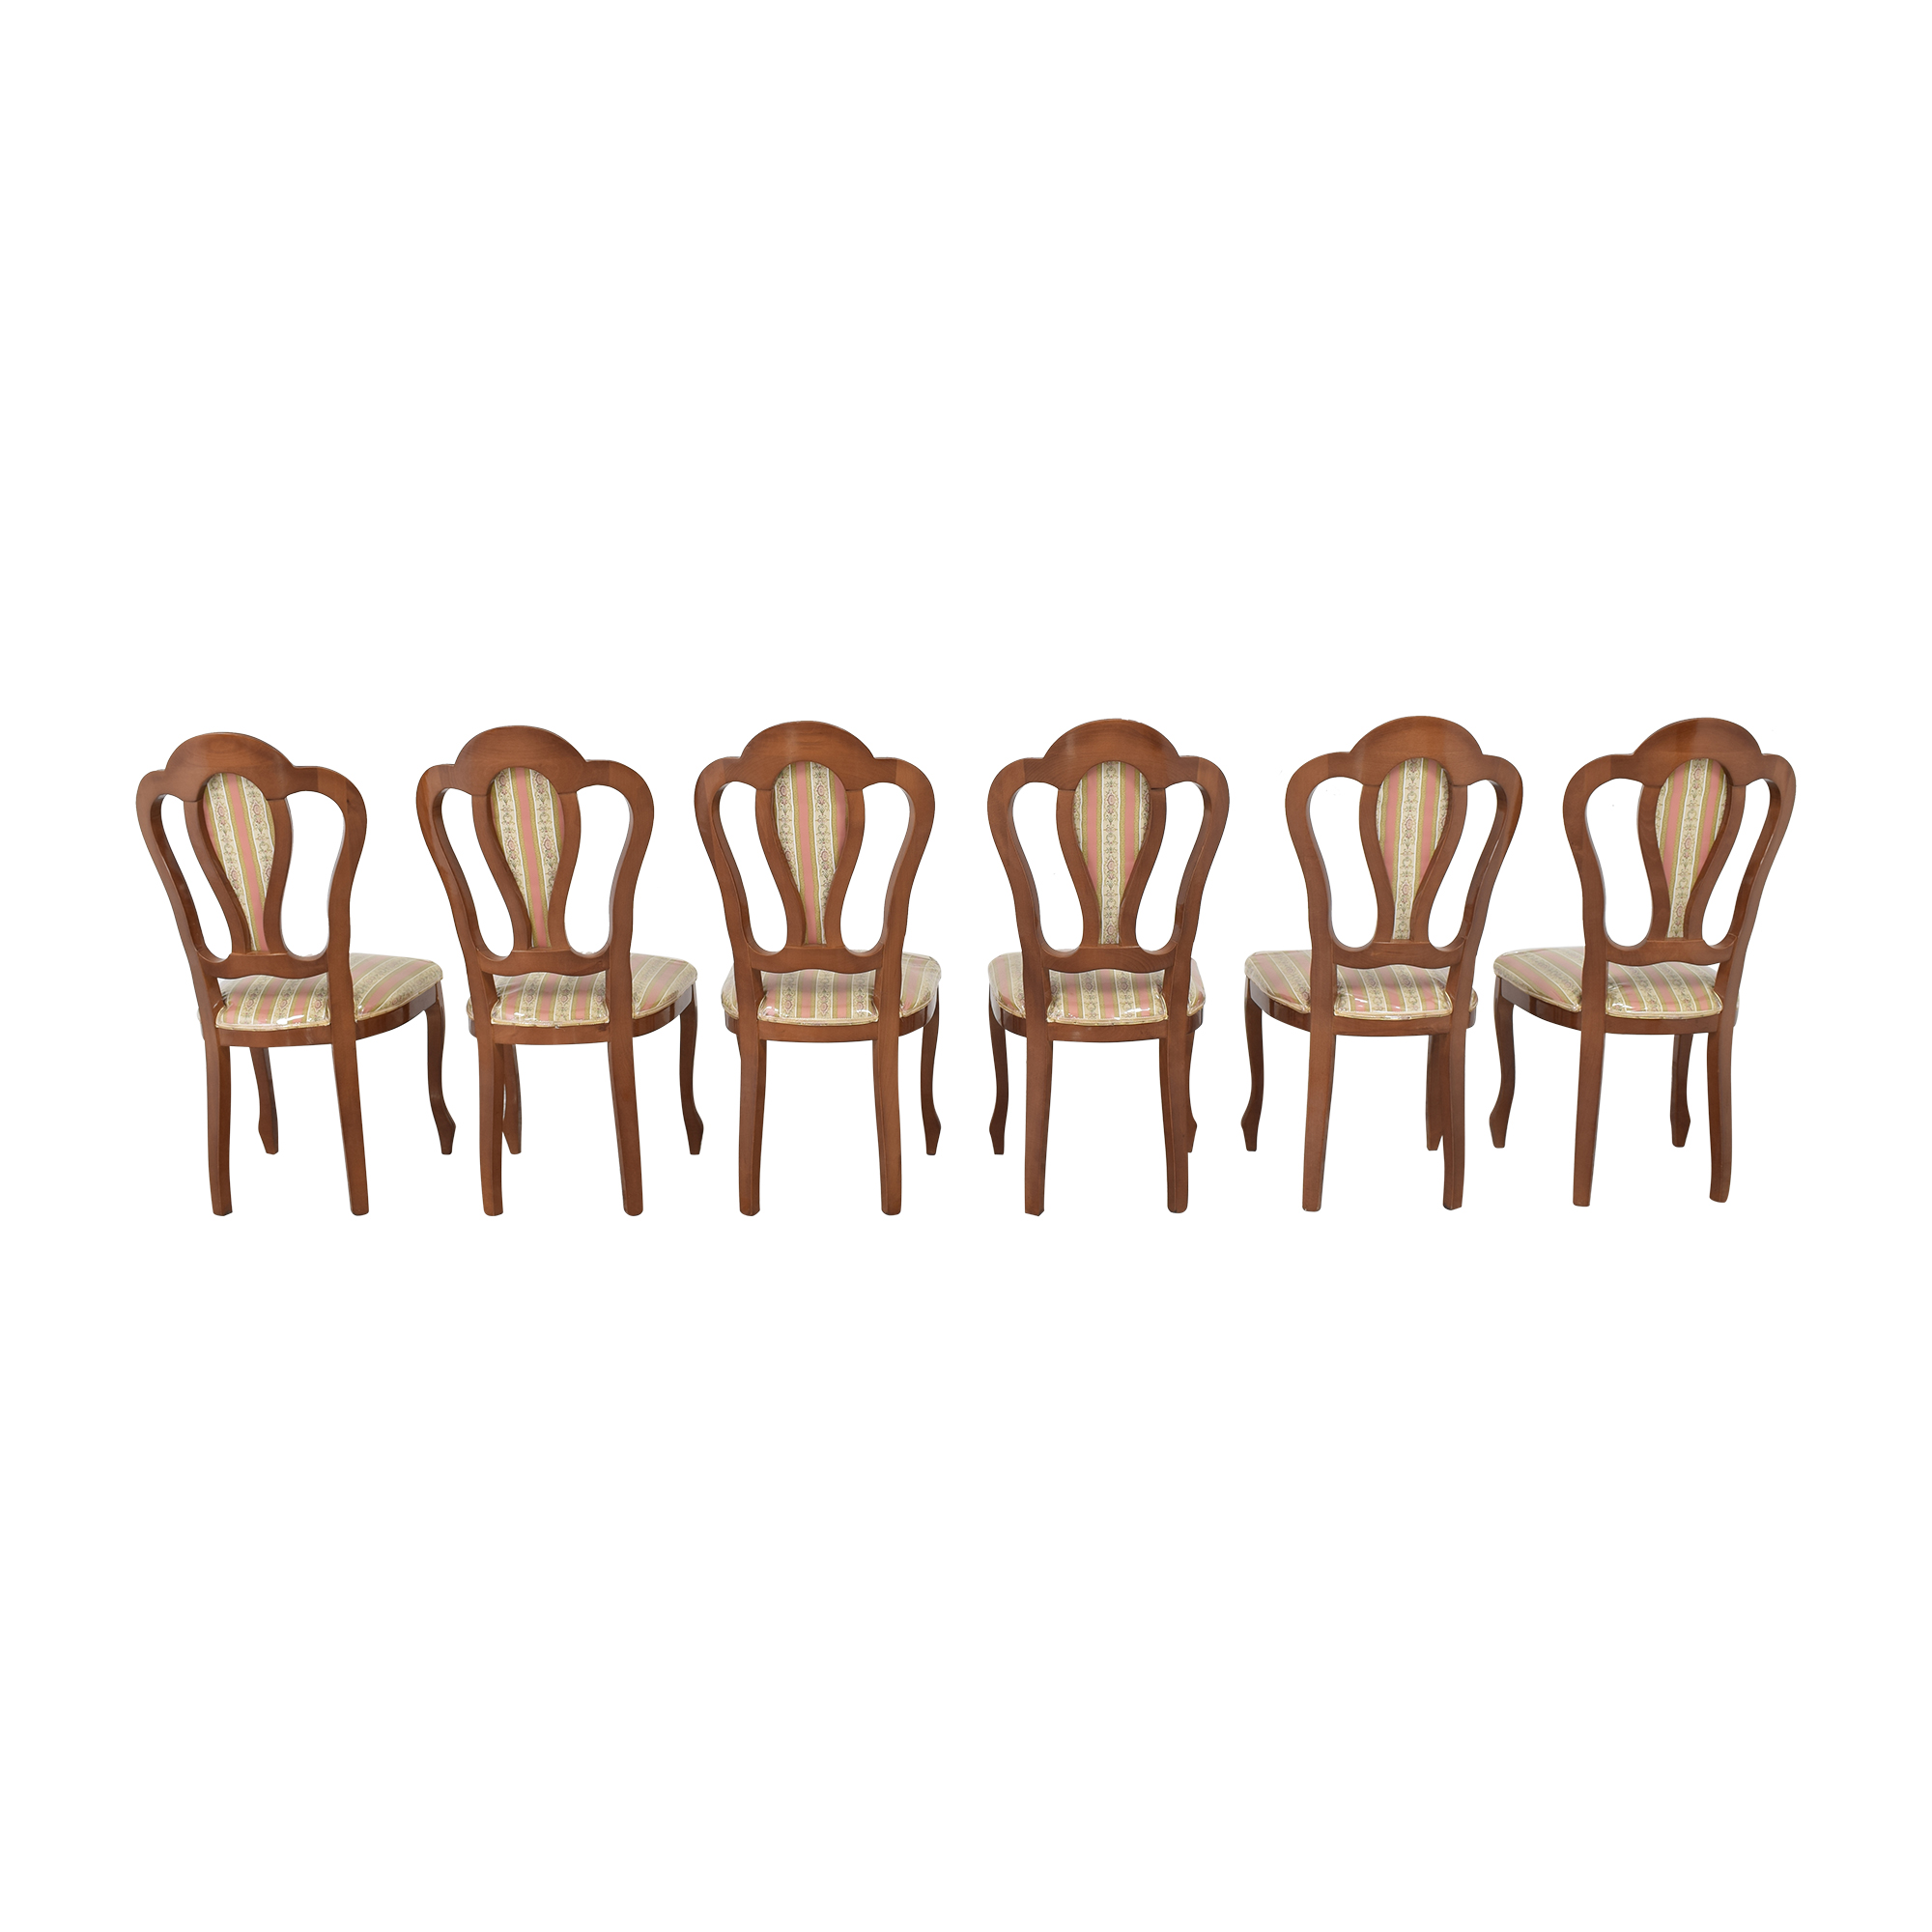 Upholstered Dining Chairs dimensions